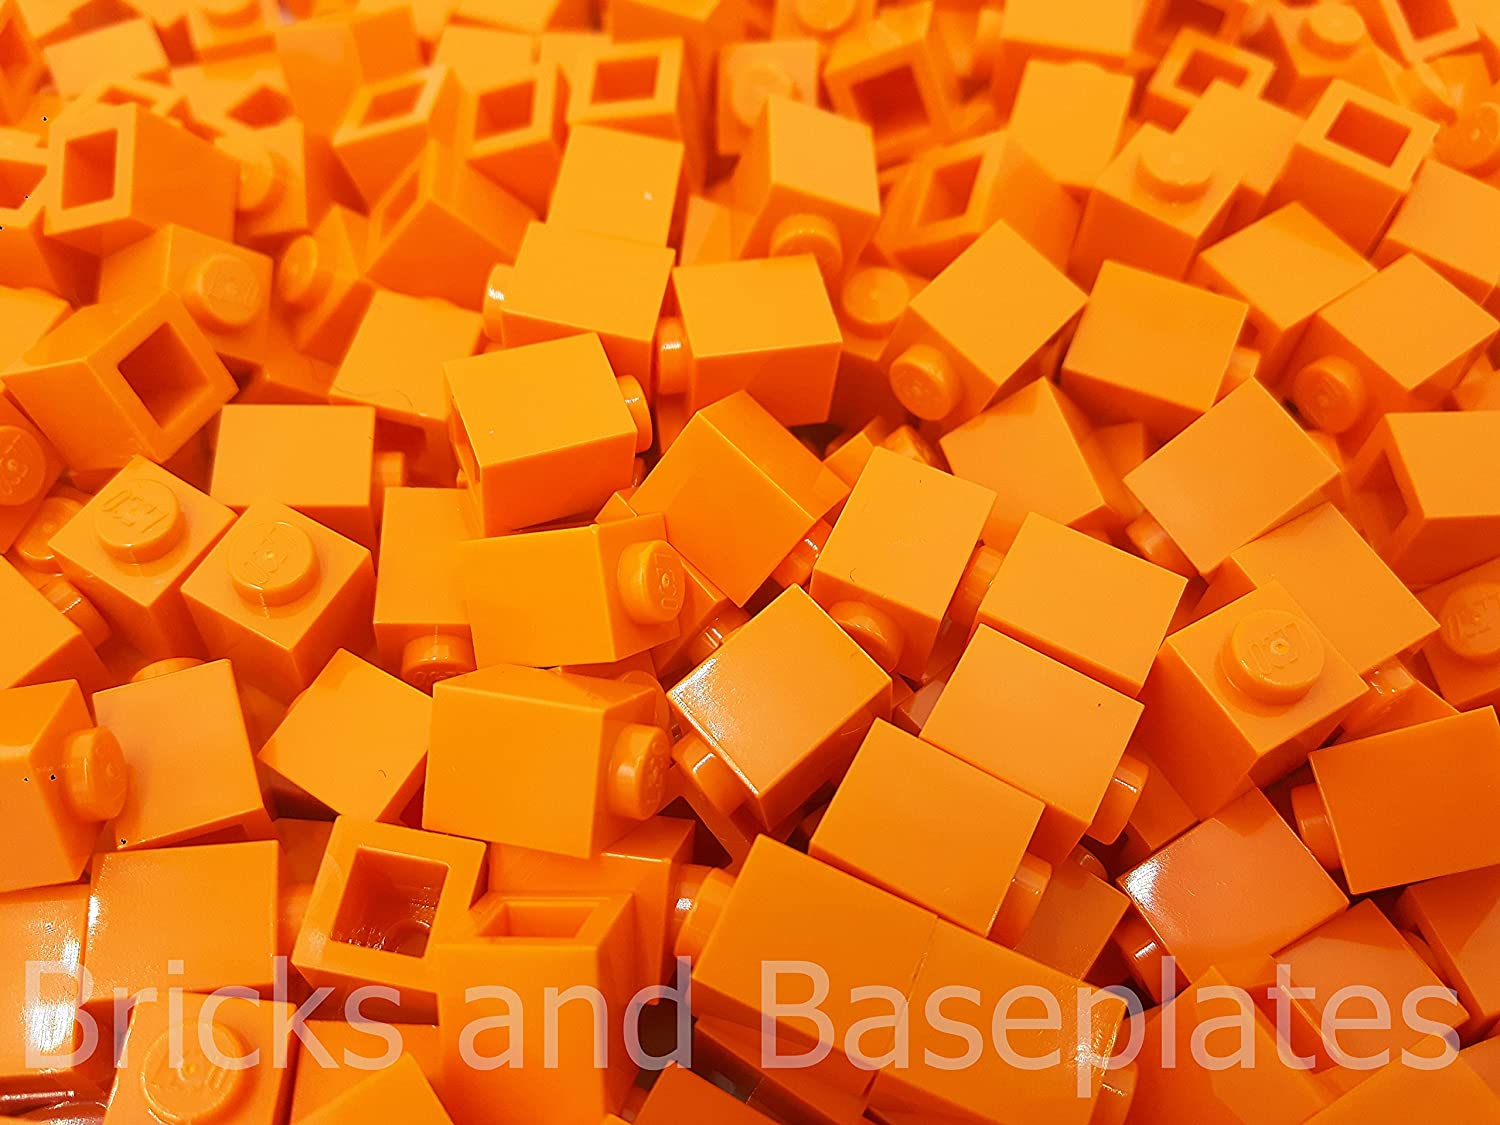 LEGO® BRICKS  1000 x orange 1x1 Pin Part 3005 Stud Dimensions 1 x 1 x 1 Dimensions LxWxH  0.8cm x 0.8 x 1.1cm FREE UK TRACKED POSTAGE From sets Supplied in Bricks and Baseplates® Sealed Packaging